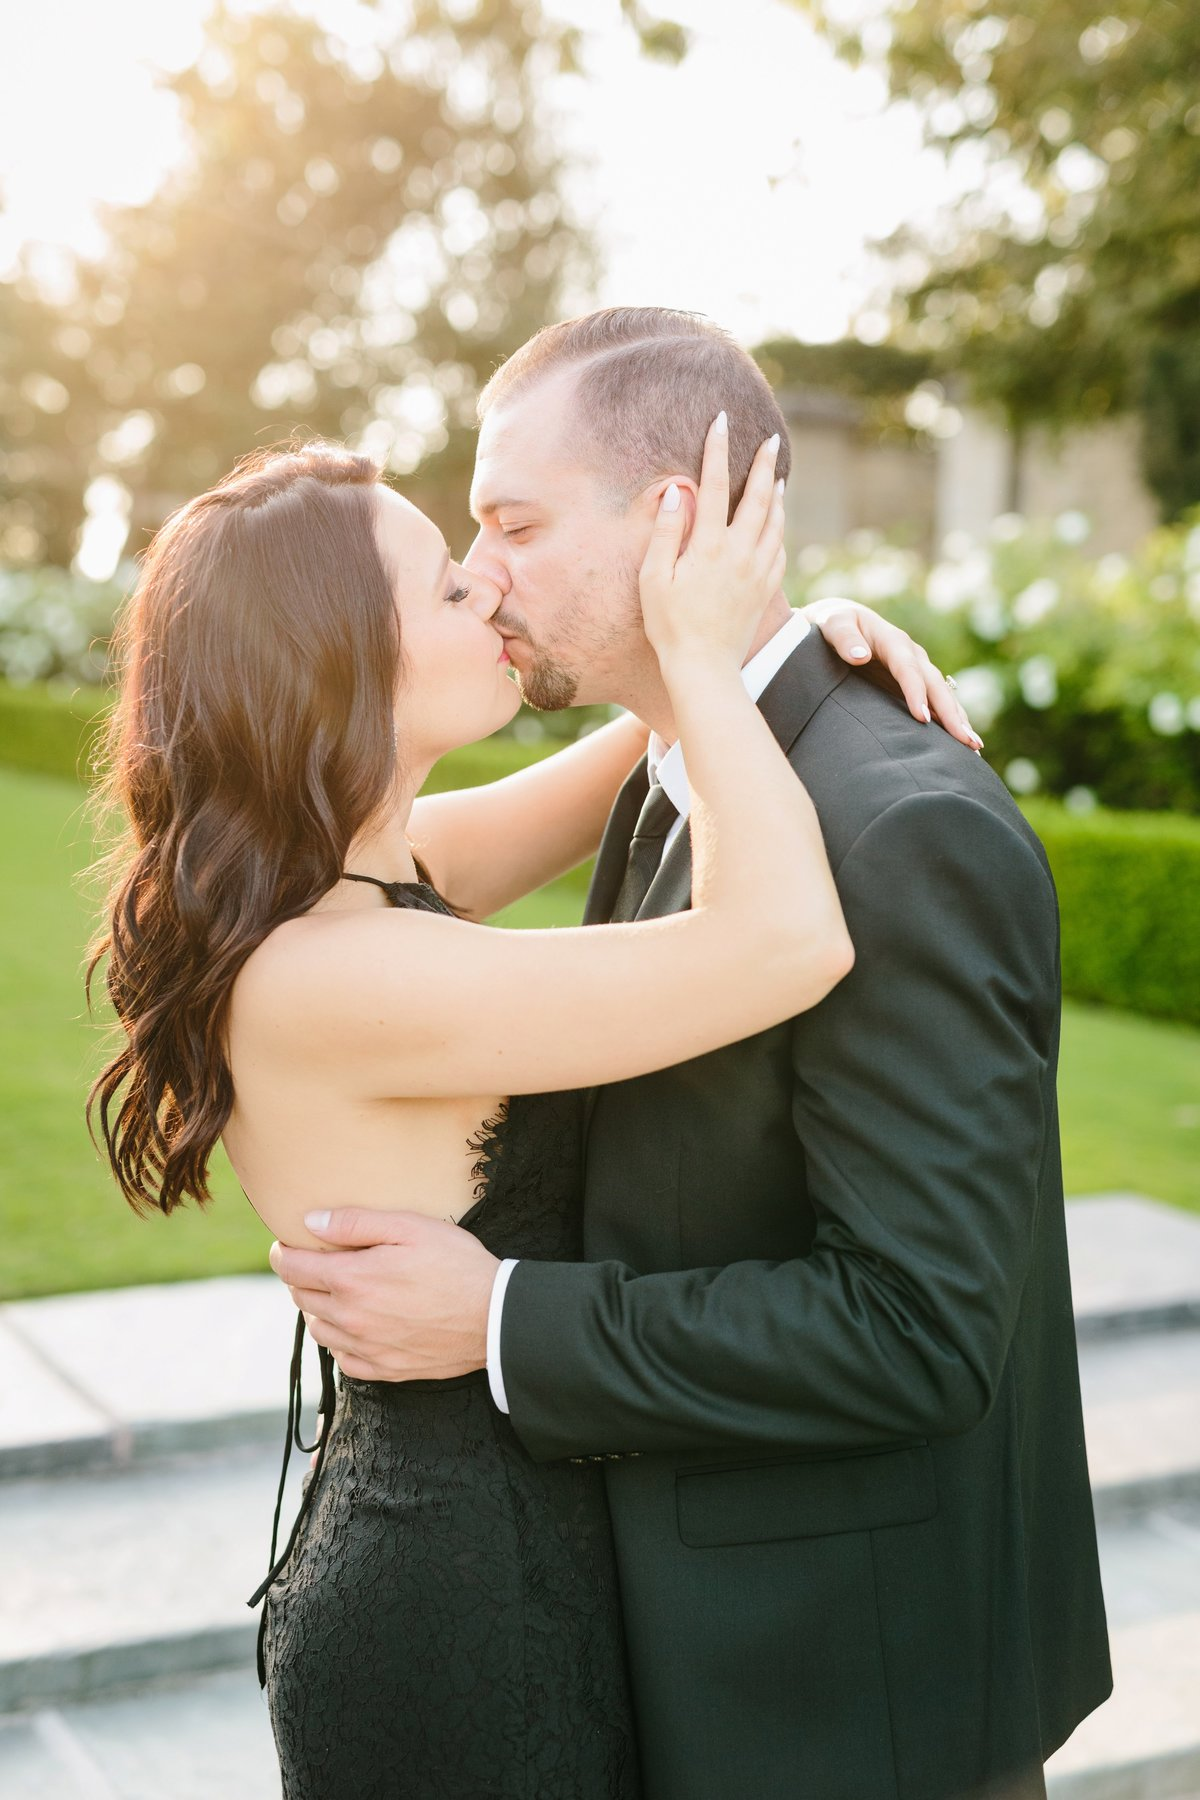 Cezara & Matt-Jodee Debes Photography-15